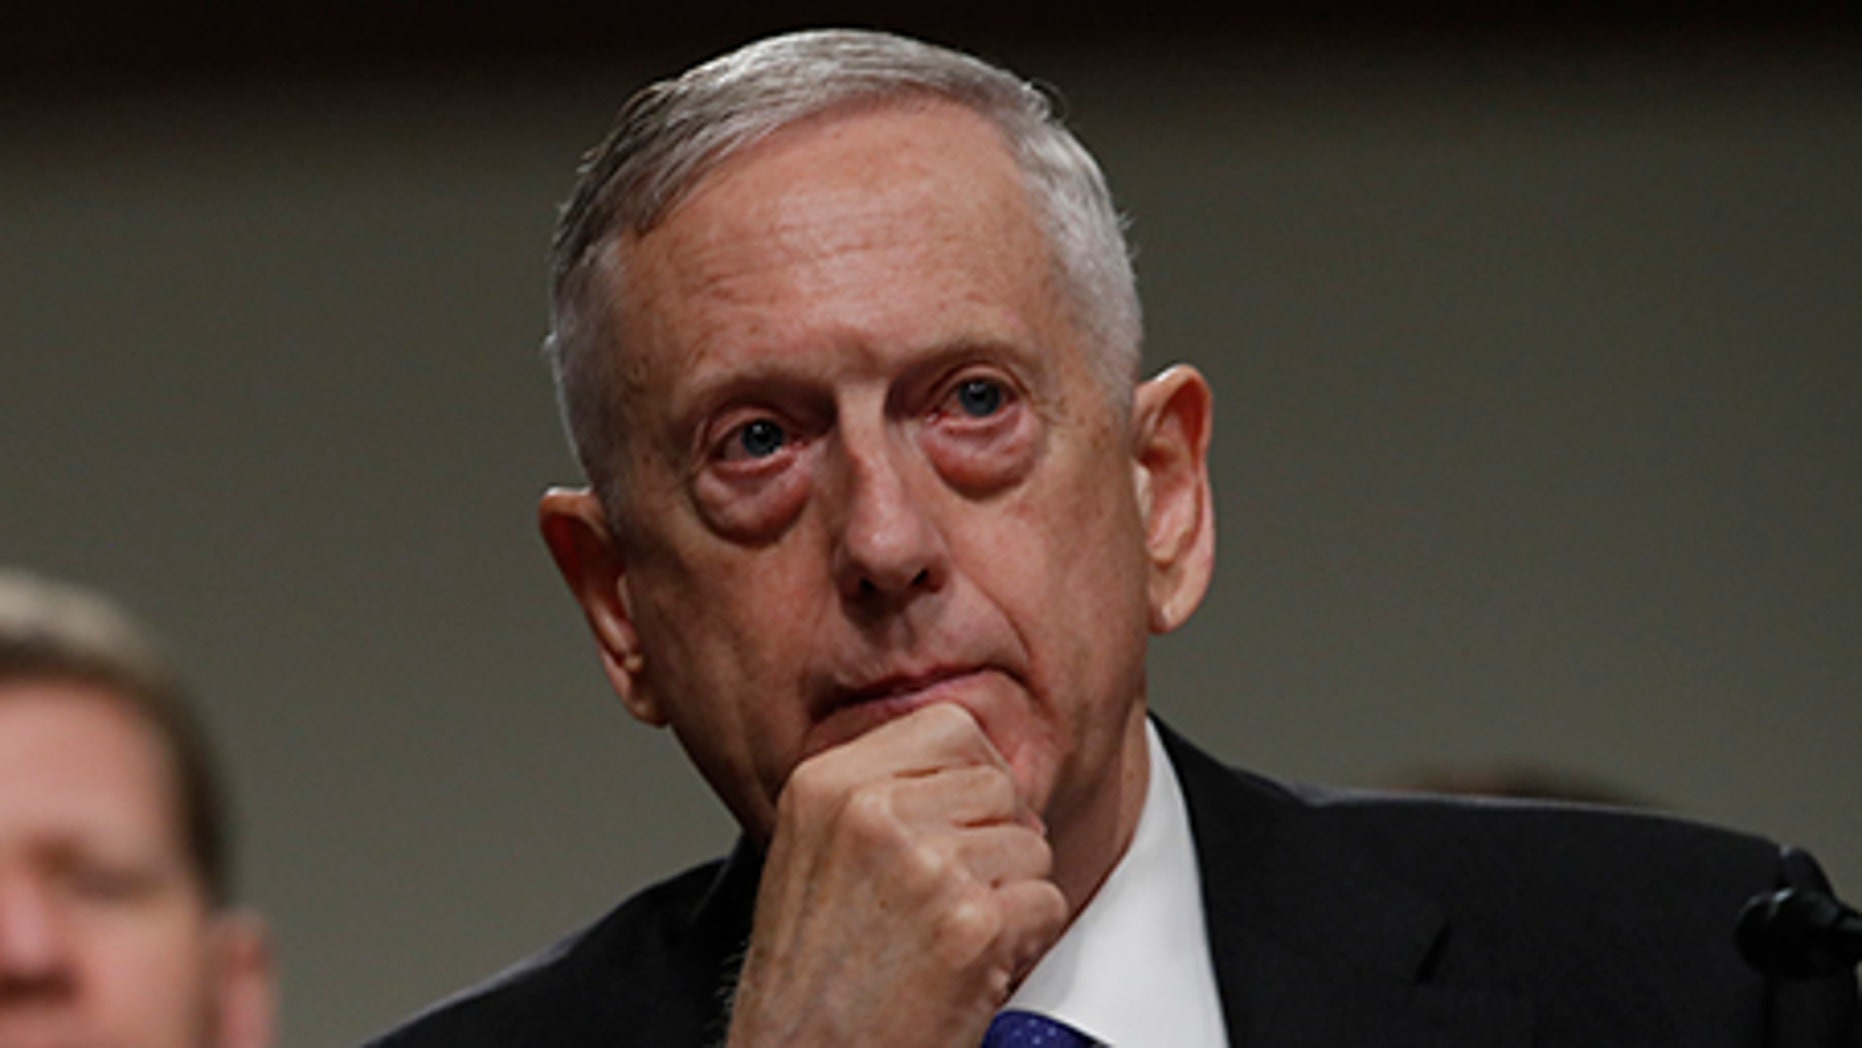 """Defense Secretary Jim Mattis listens on Capitol Hill in Washington. Mattis is issuing his own sharp threat to North Korea, saying the regime should cease any consideration of actions that would """"lead to the end of its regime and the destruction of its people."""""""